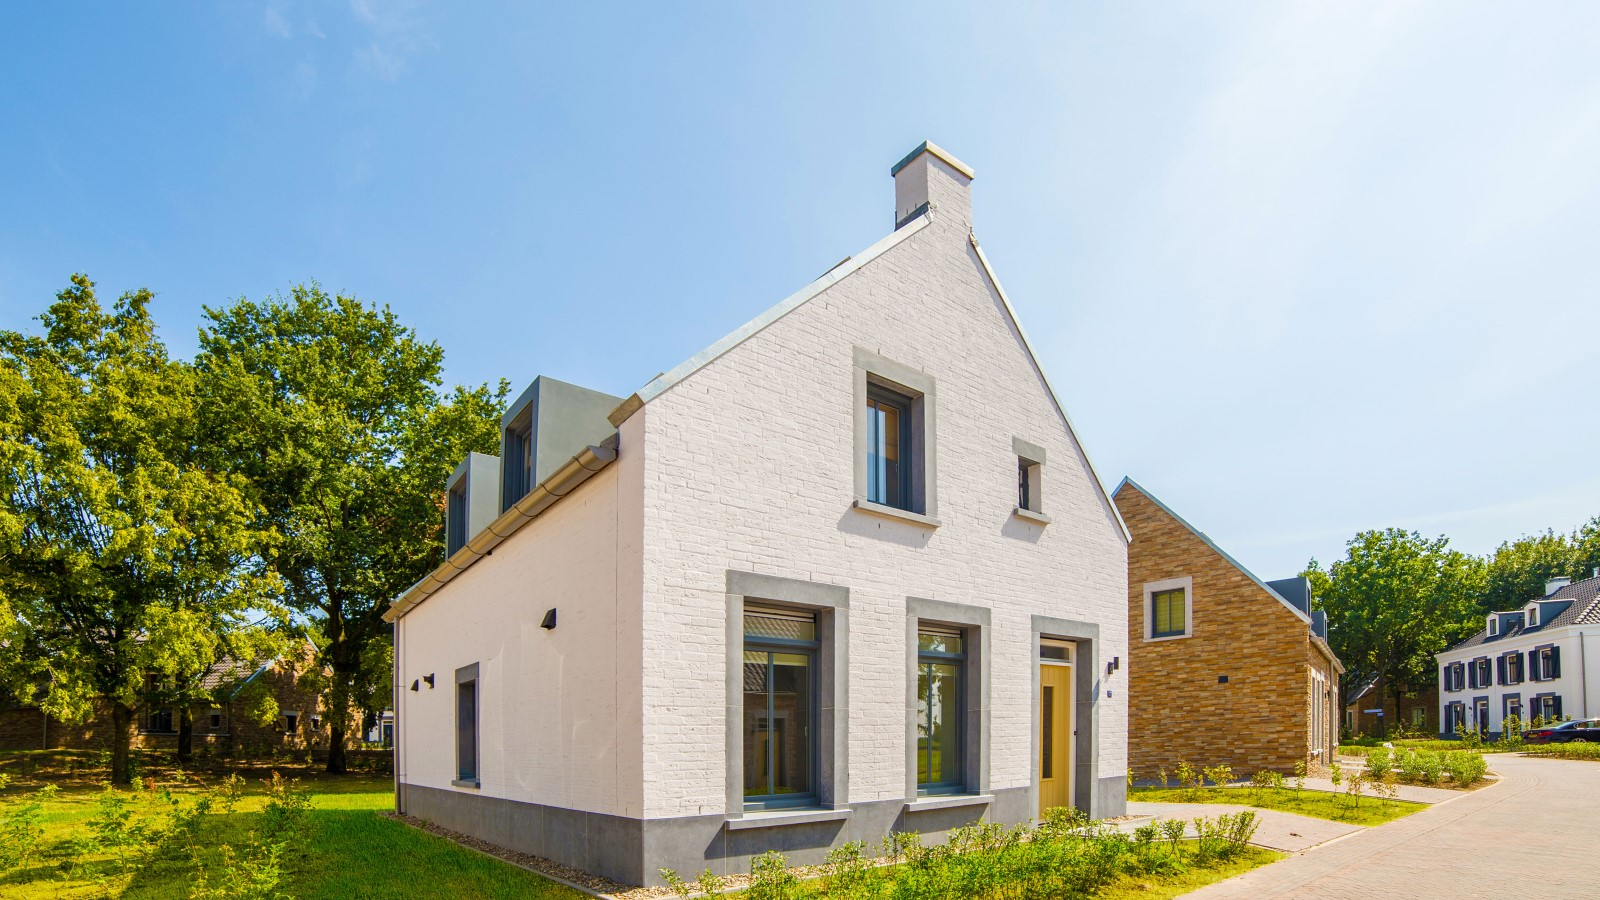 Koopliedenhuis comfort Kids - 3 bedrooms